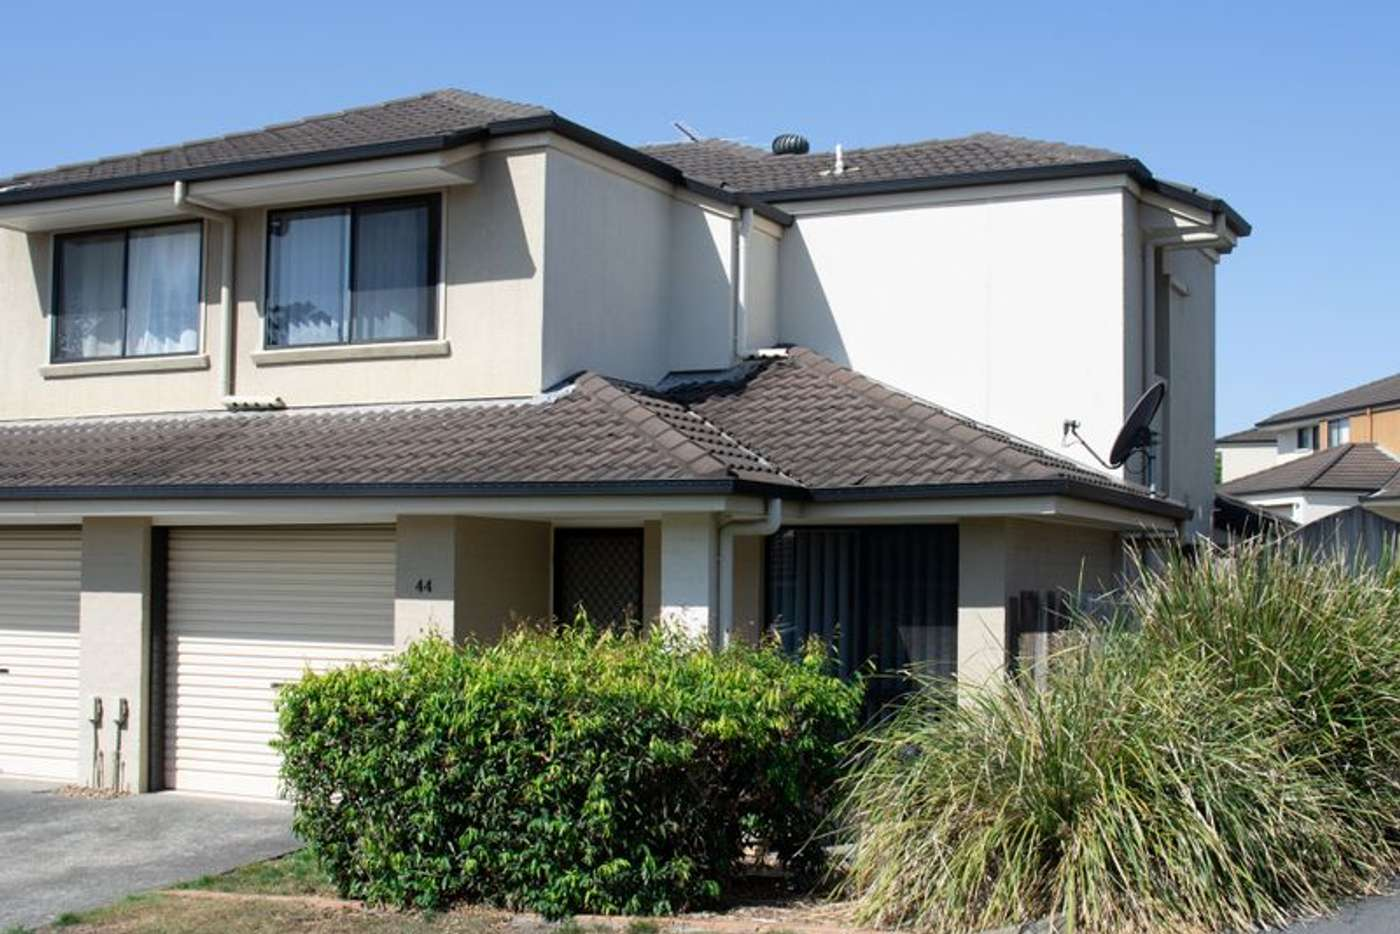 Main view of Homely townhouse listing, Unit 44/11 Federation St, Wynnum West QLD 4178